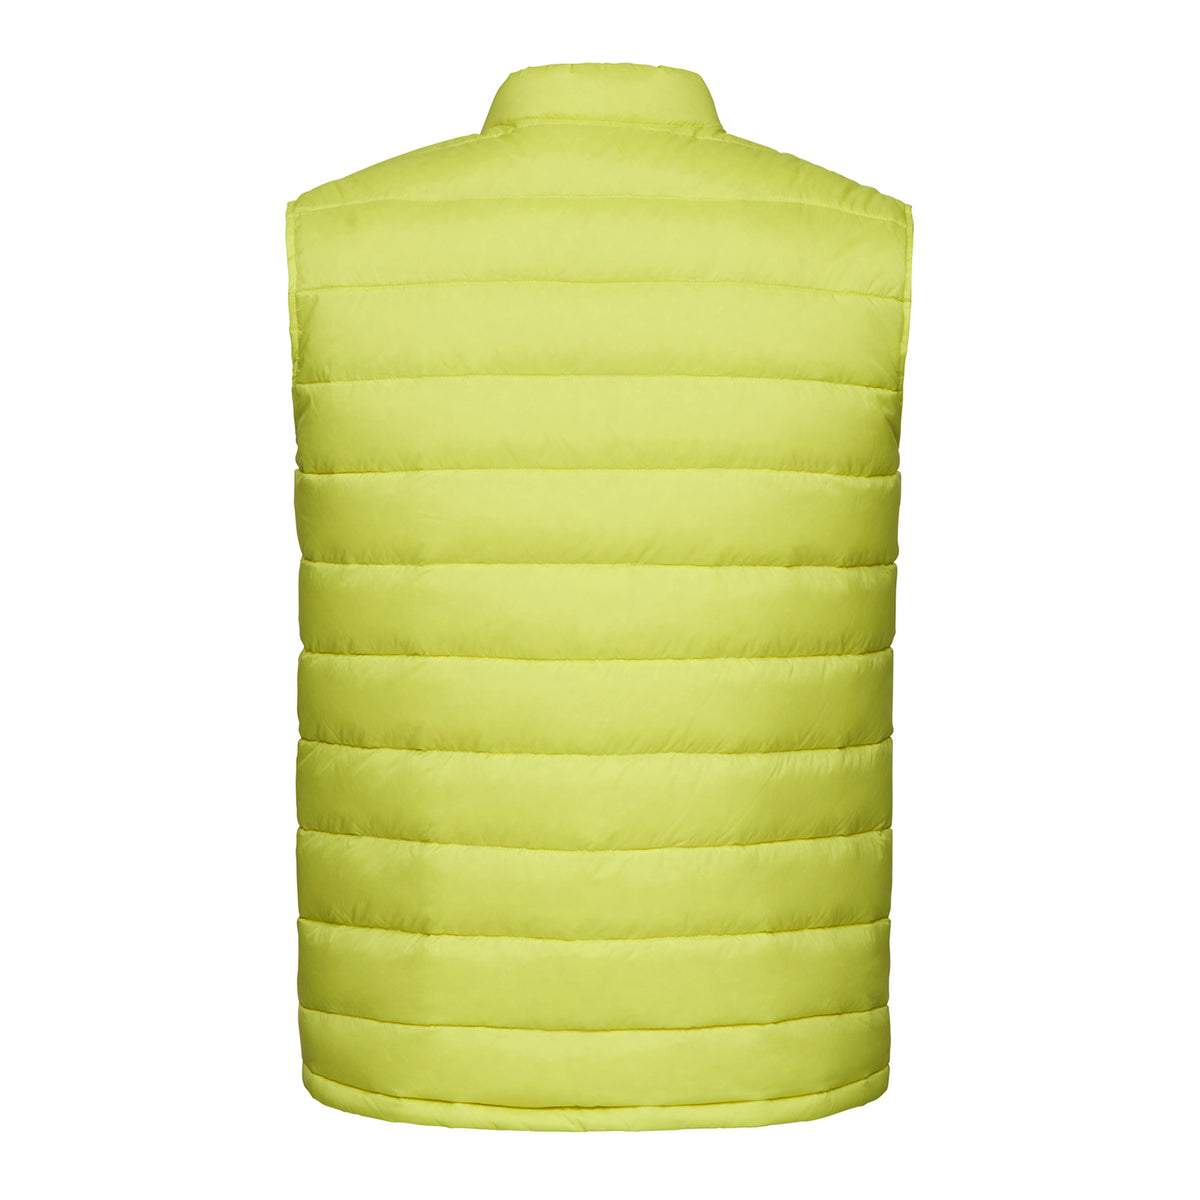 Motion Lite Vest - background::white,variant::Limeade